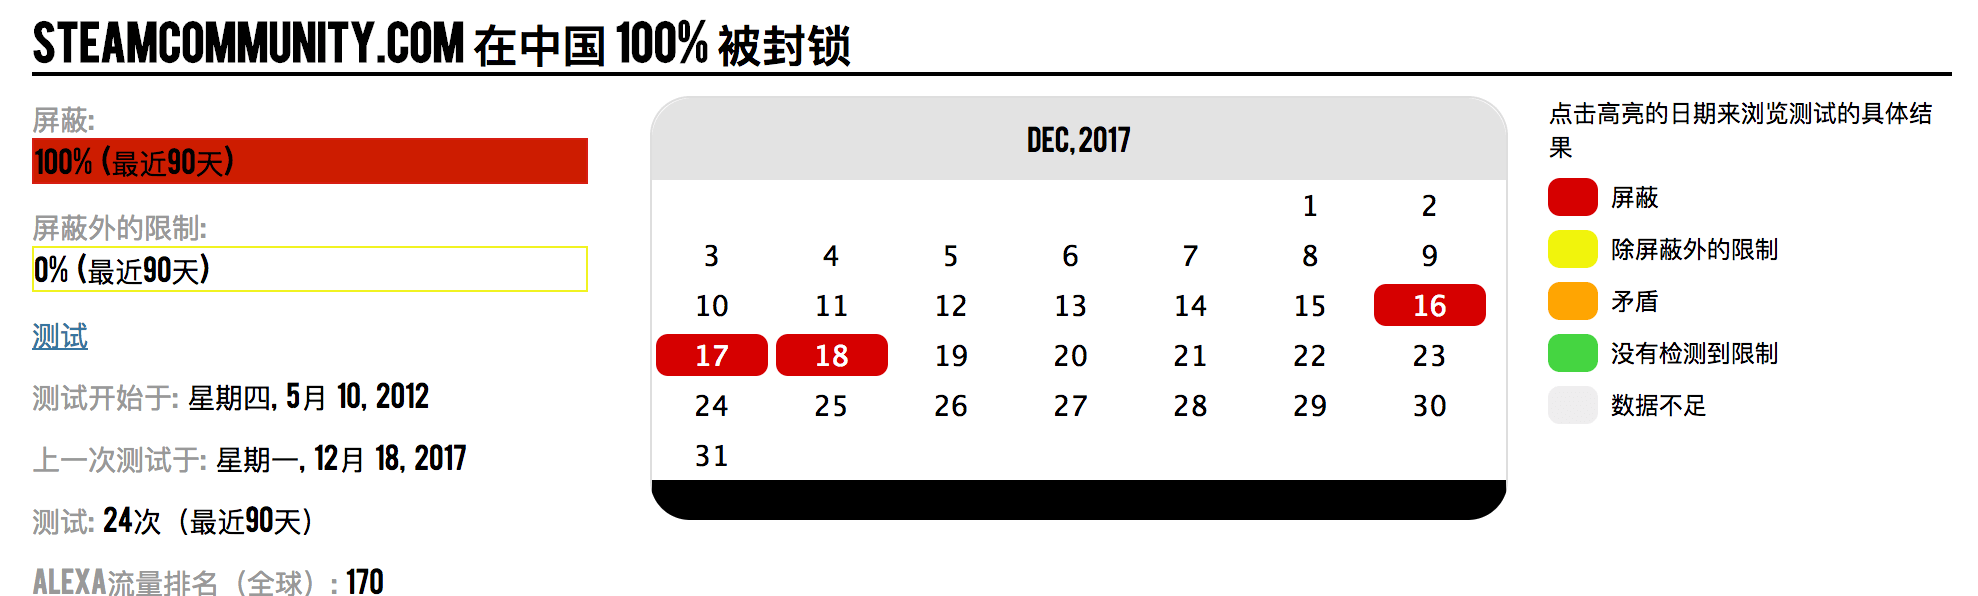 WX20171219-002245@2x.png